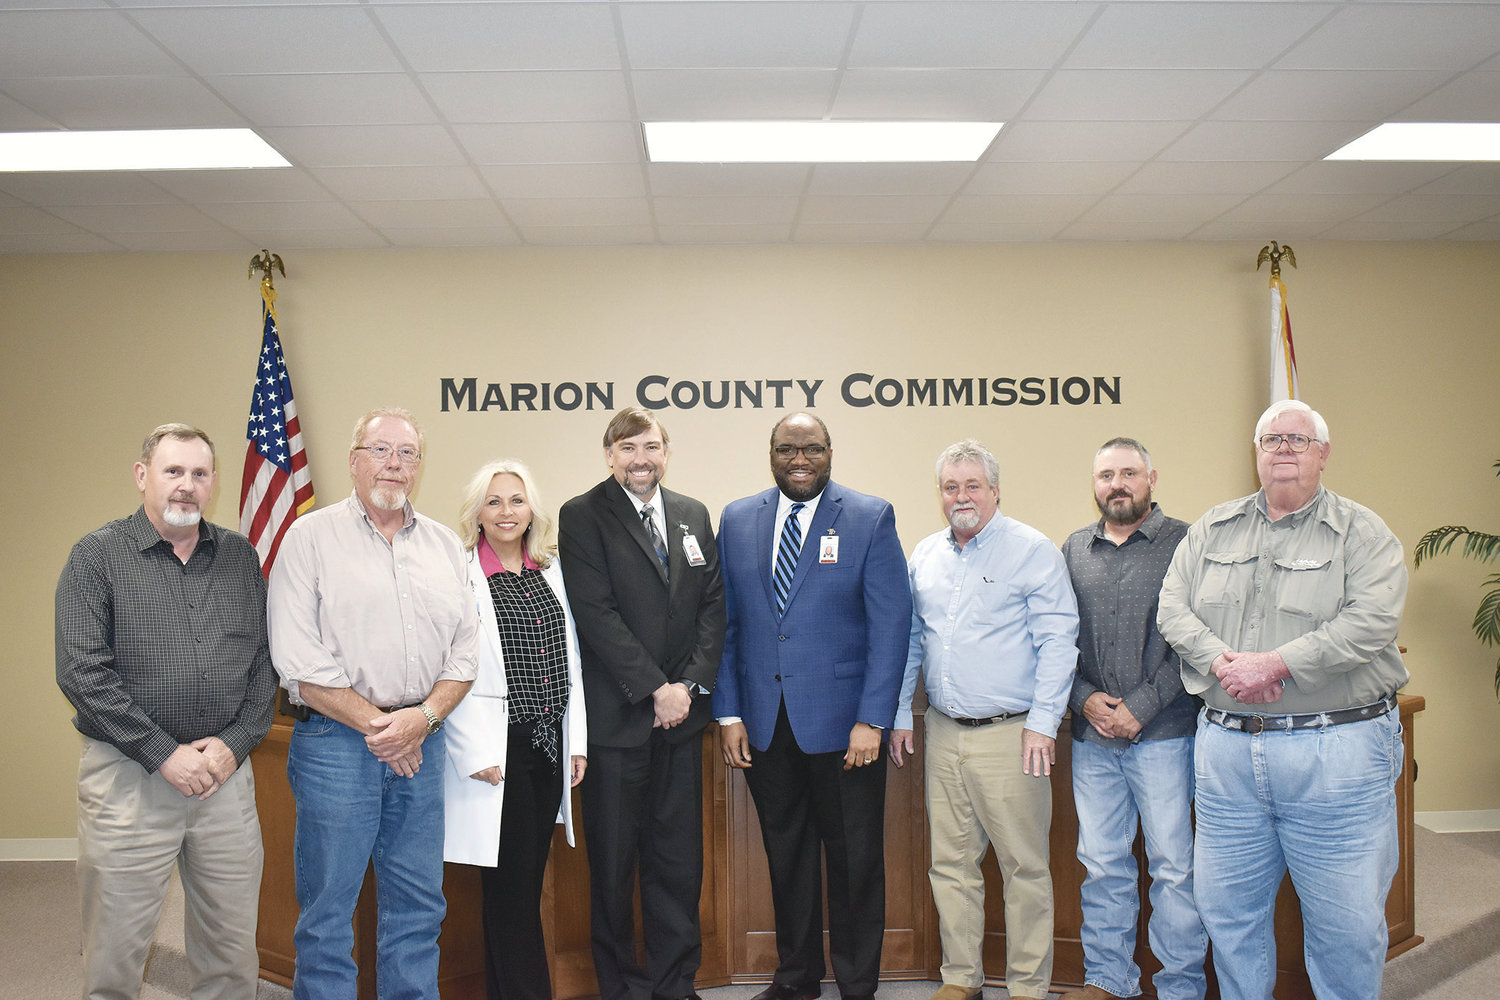 Bevill State Community College leaders are pictured with members of the Marion County Commission after signing a memorandum of agreement regarding the college's new truck driver training program in Hamilton.